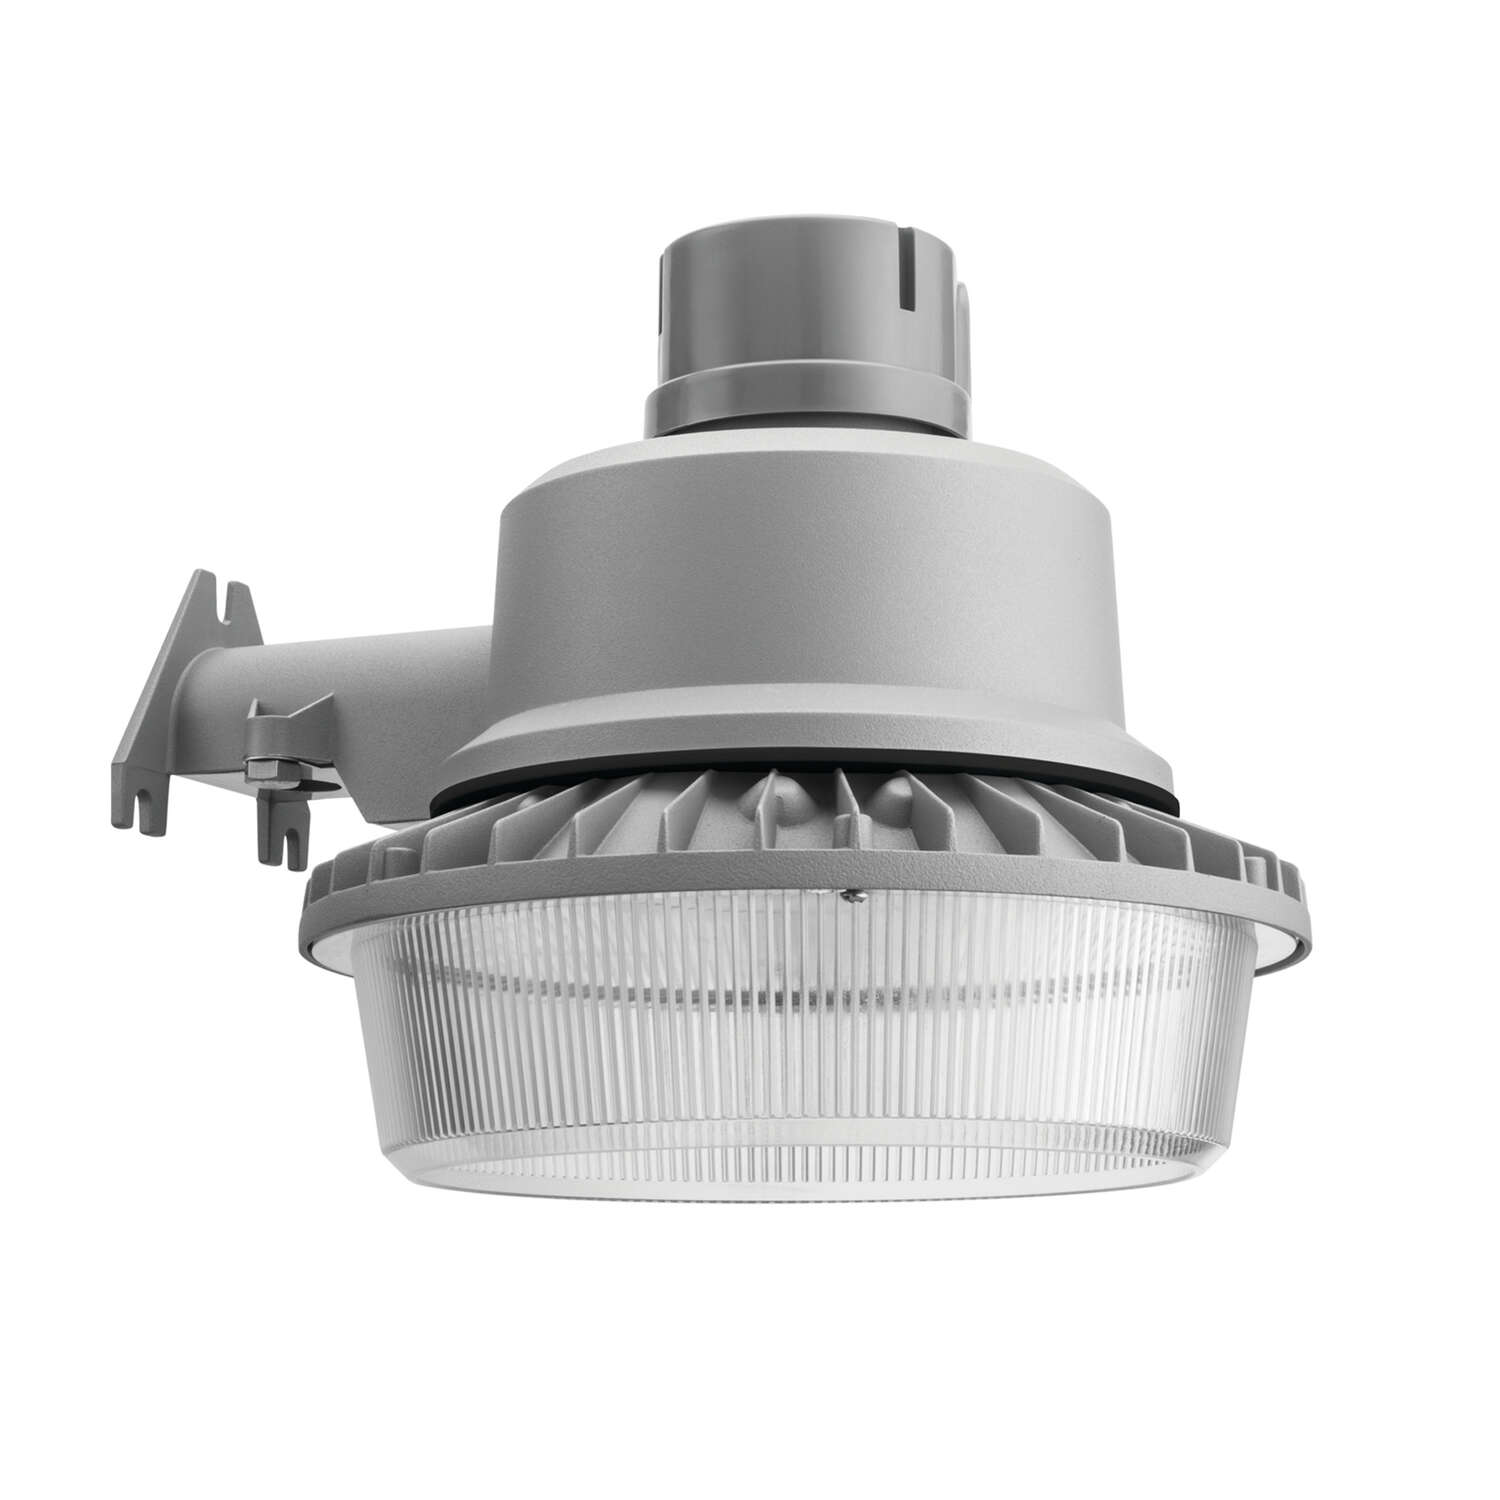 Lithonia Lighting  Dusk to Dawn  Gray  Area Light  Hardwired